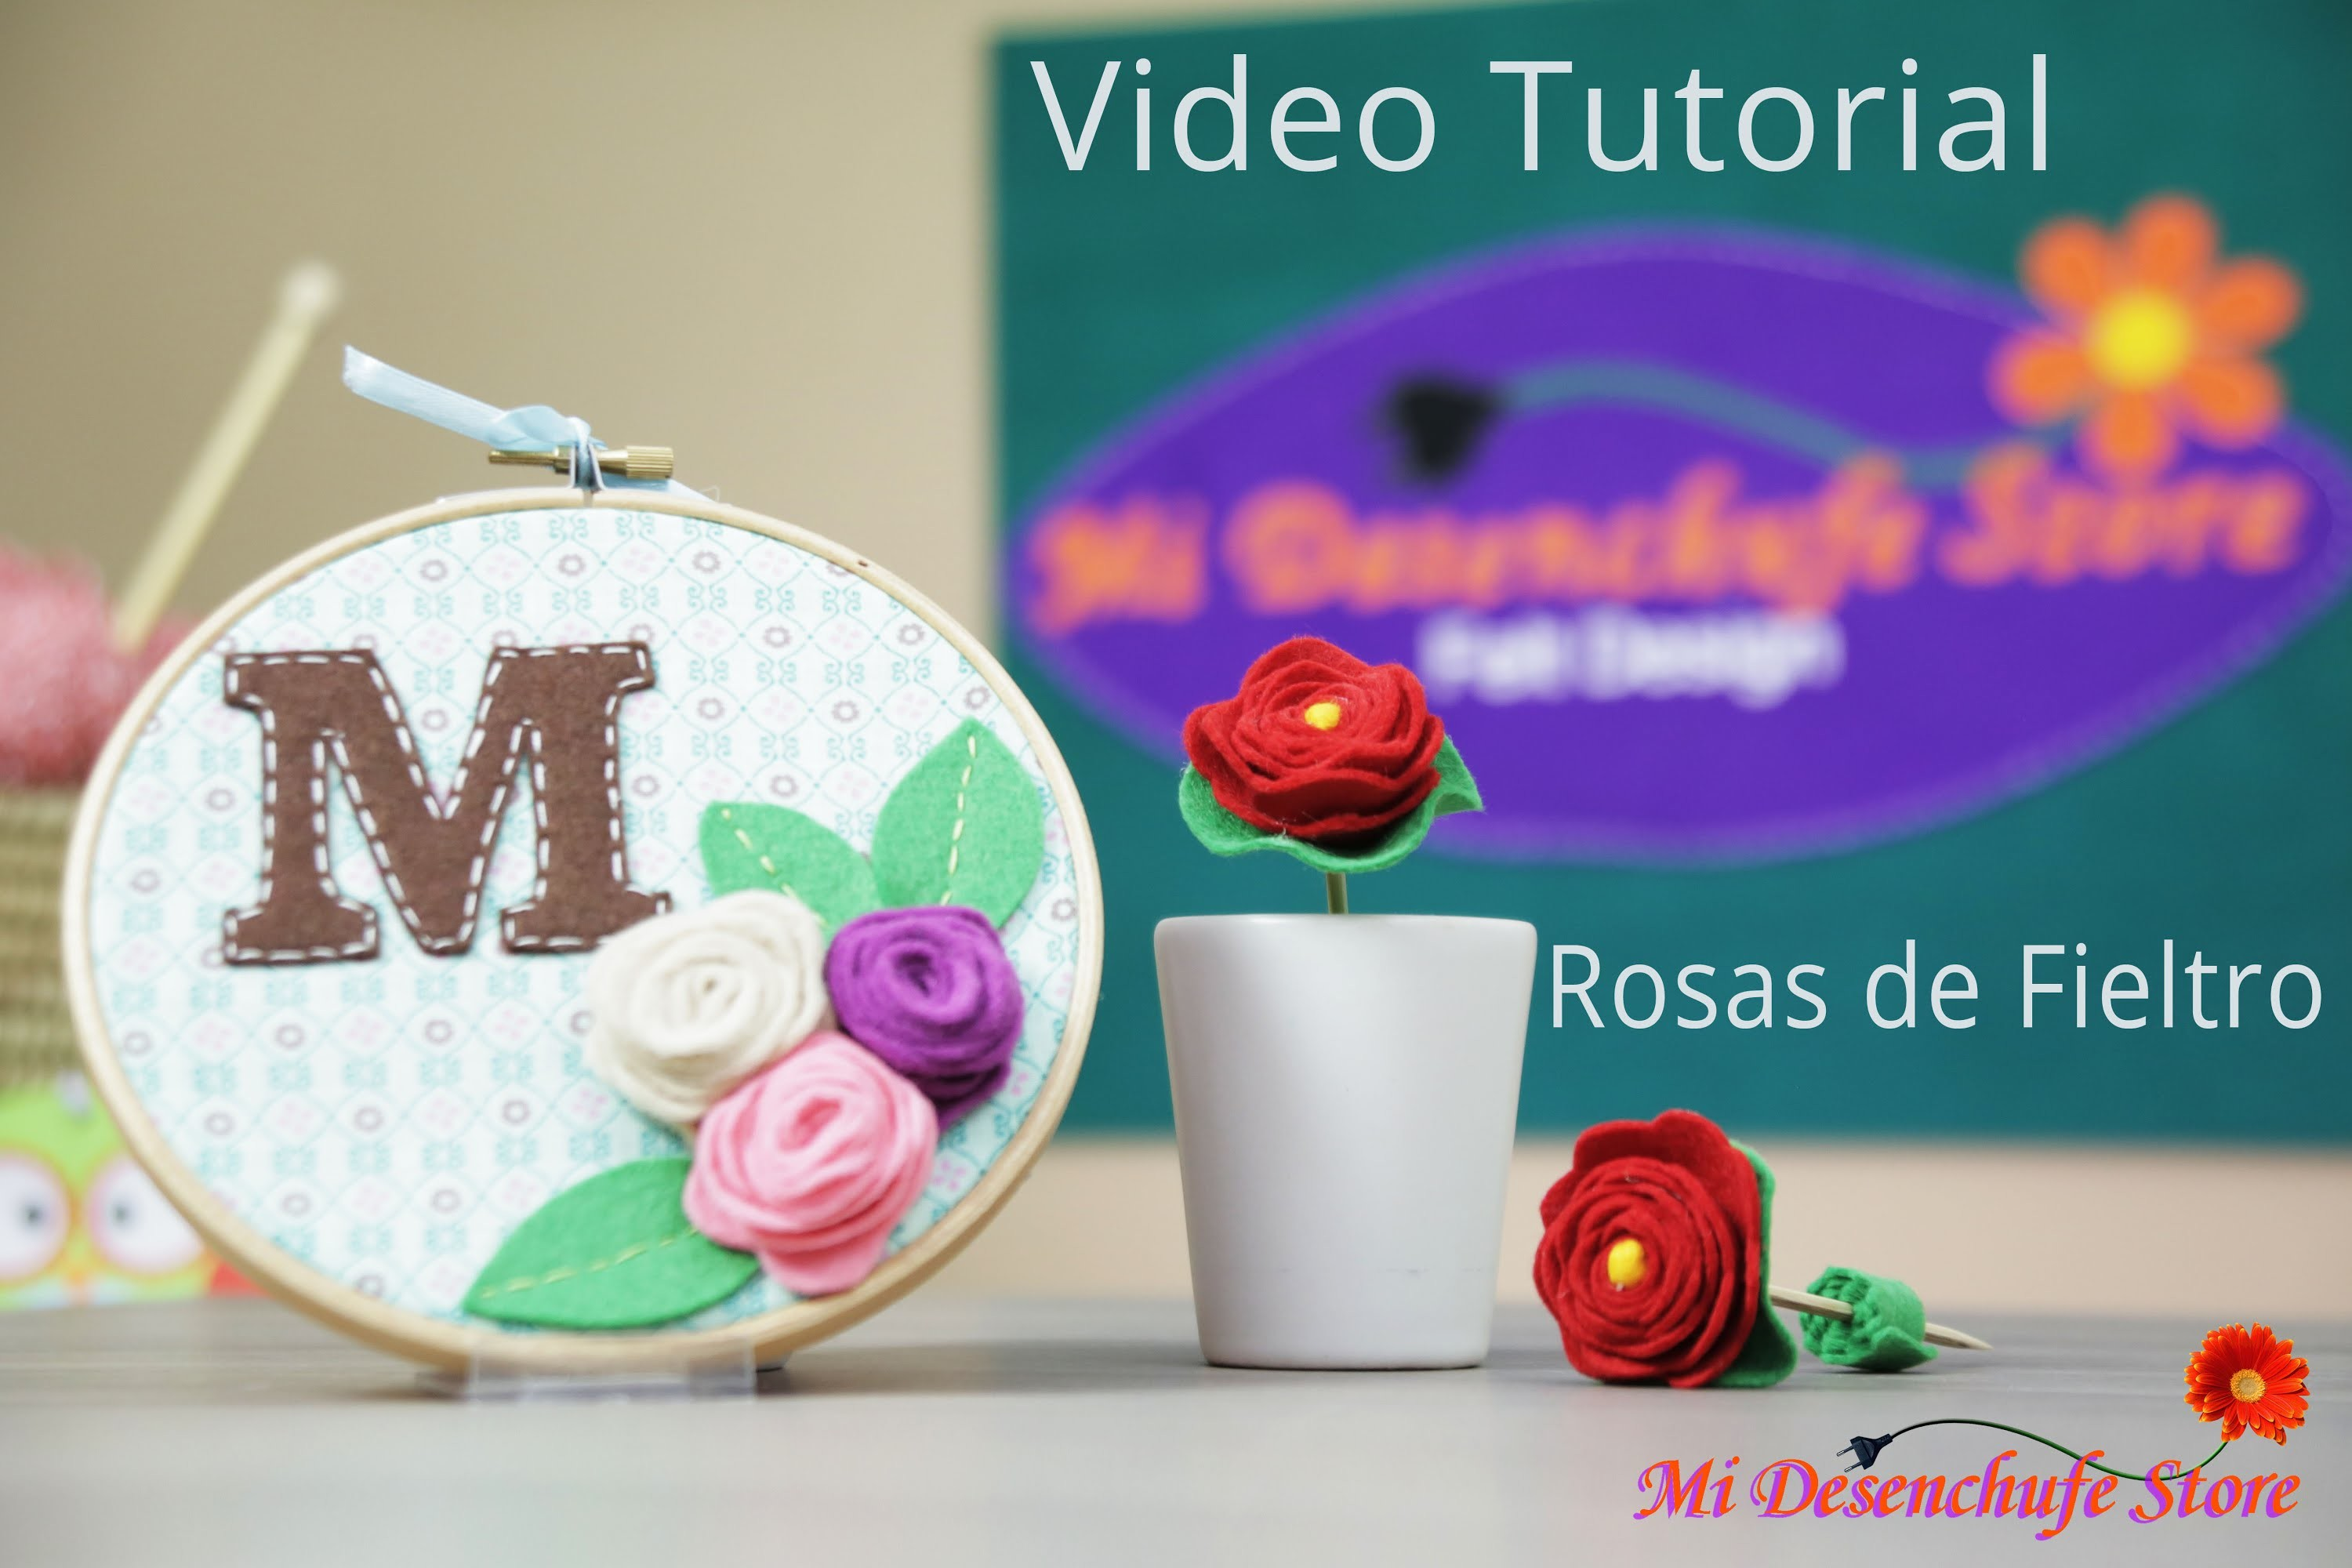 Tutorial #7 - Como hacer Rosas de Fieltro - How to make felt roses